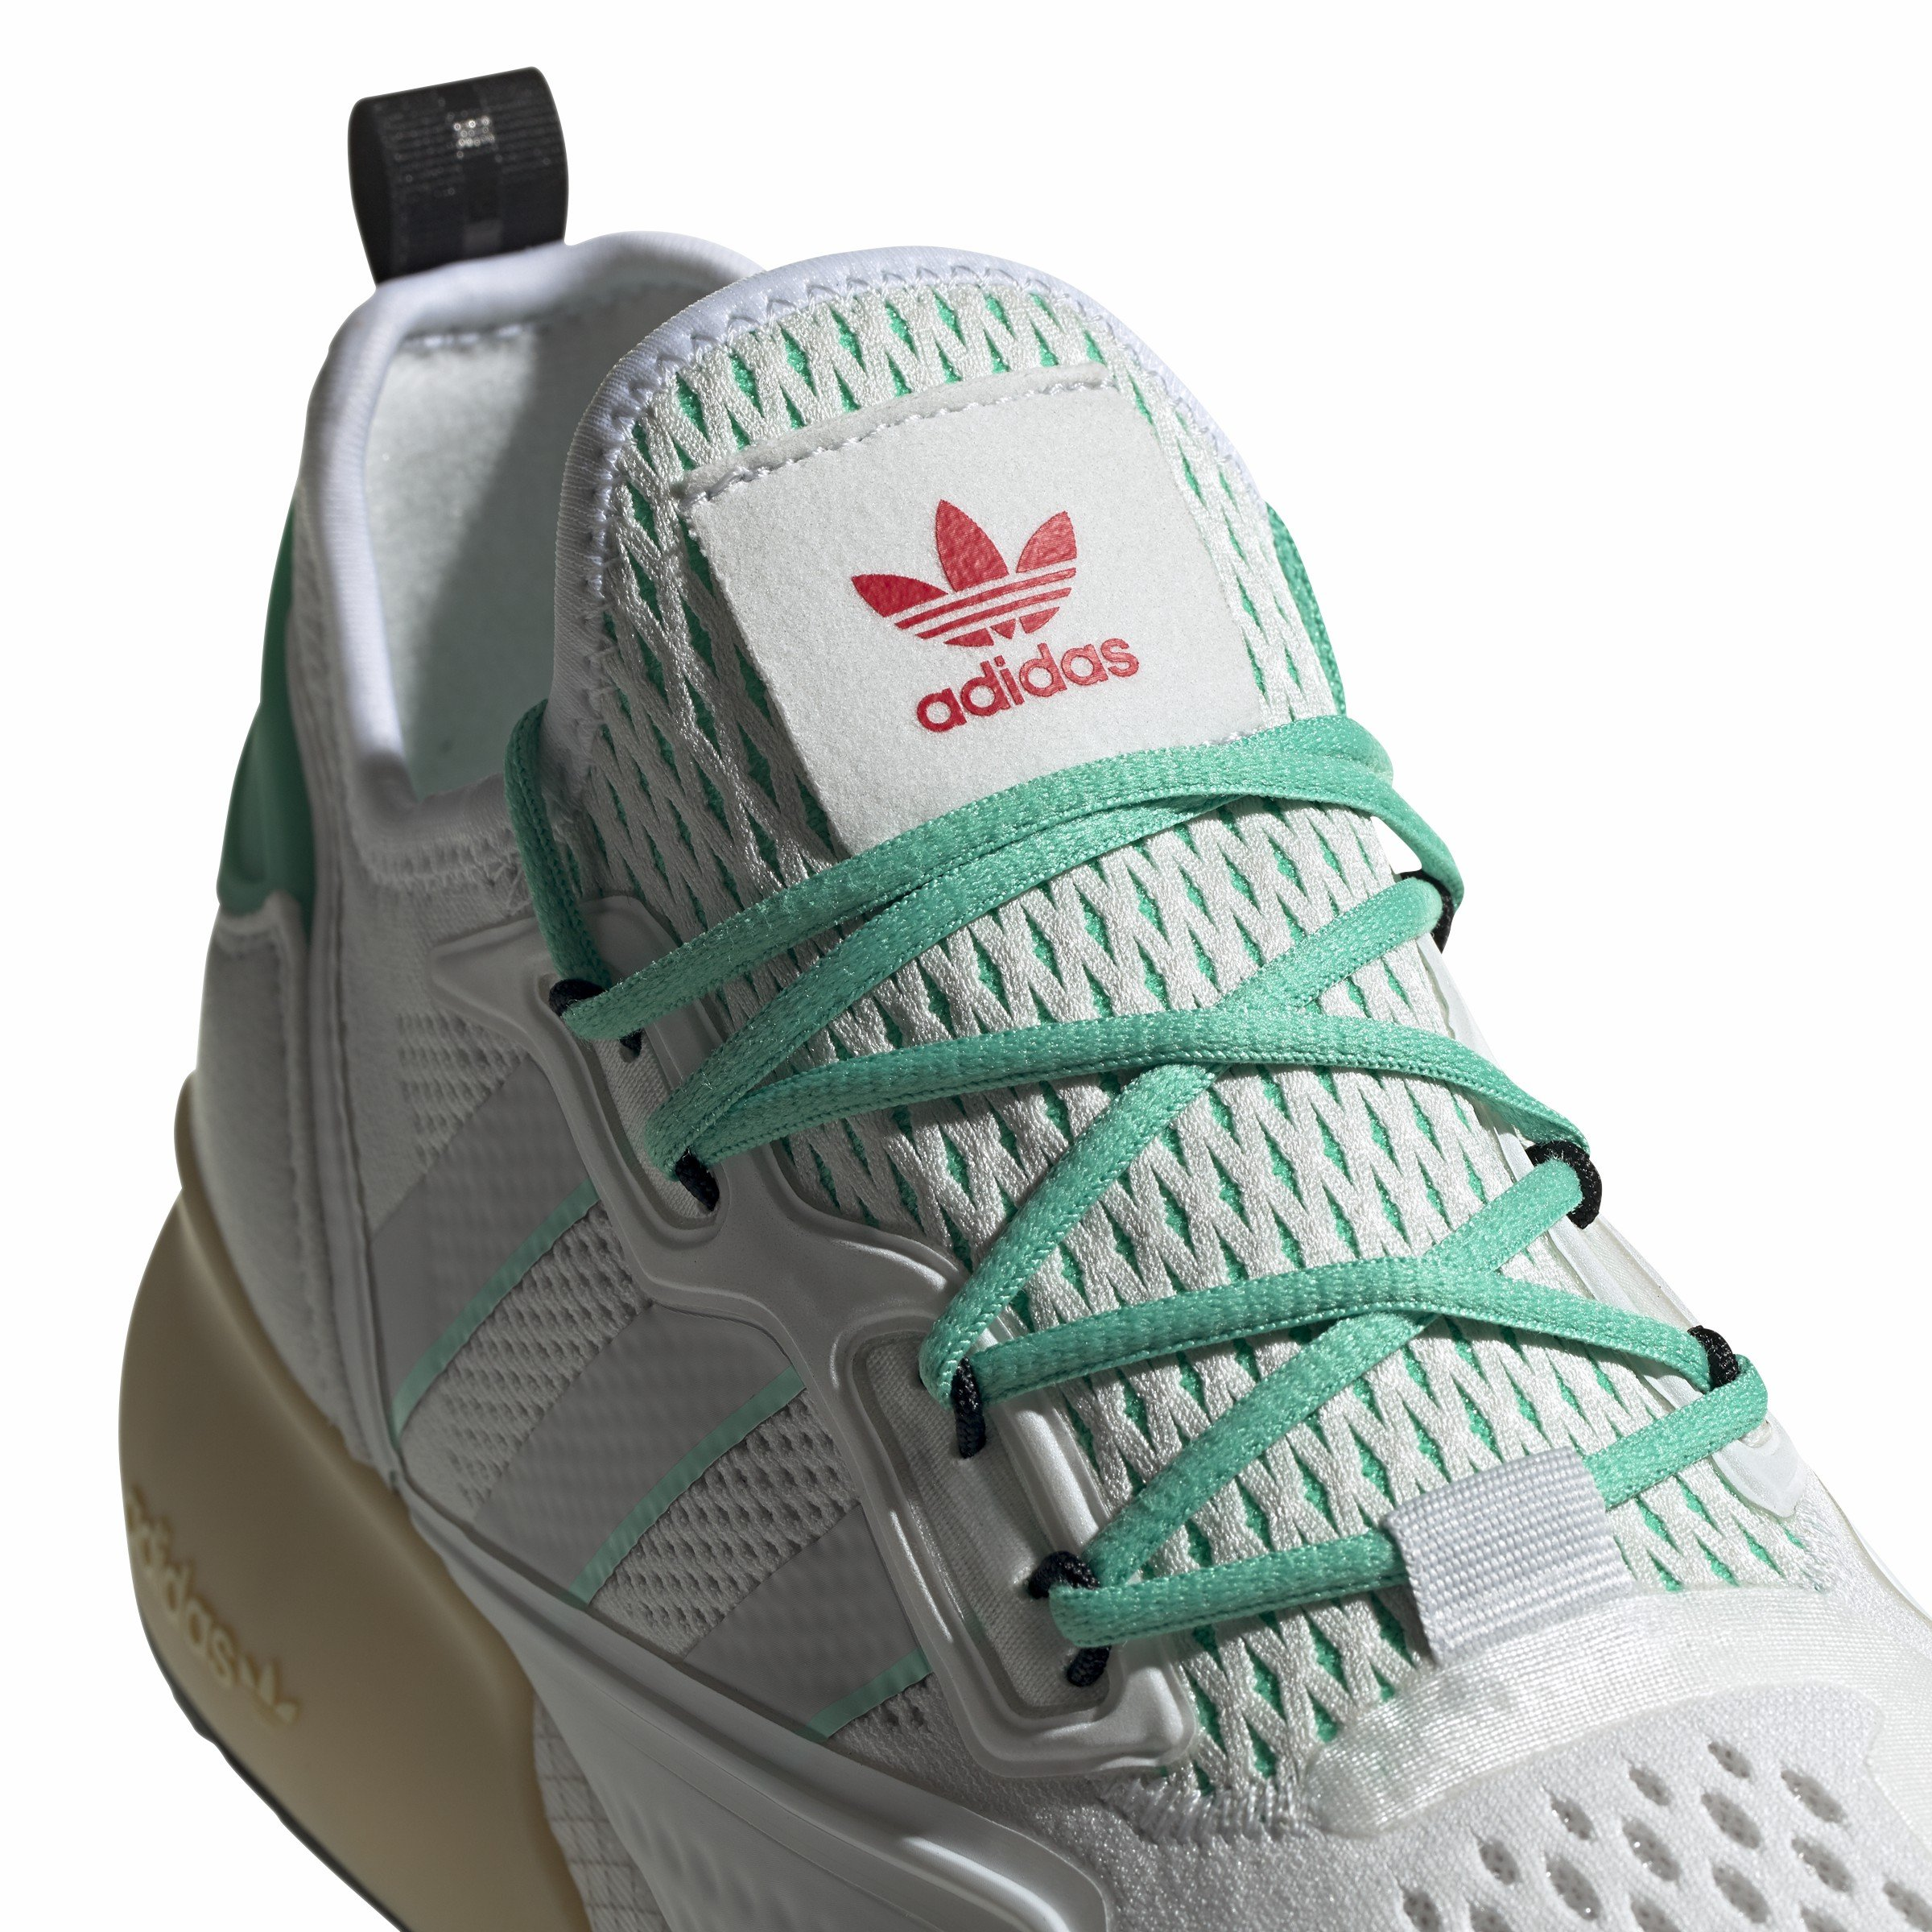 Adidas Originals Zx 2k Boost - Sneakers Basse White/grey/ Green 40arA